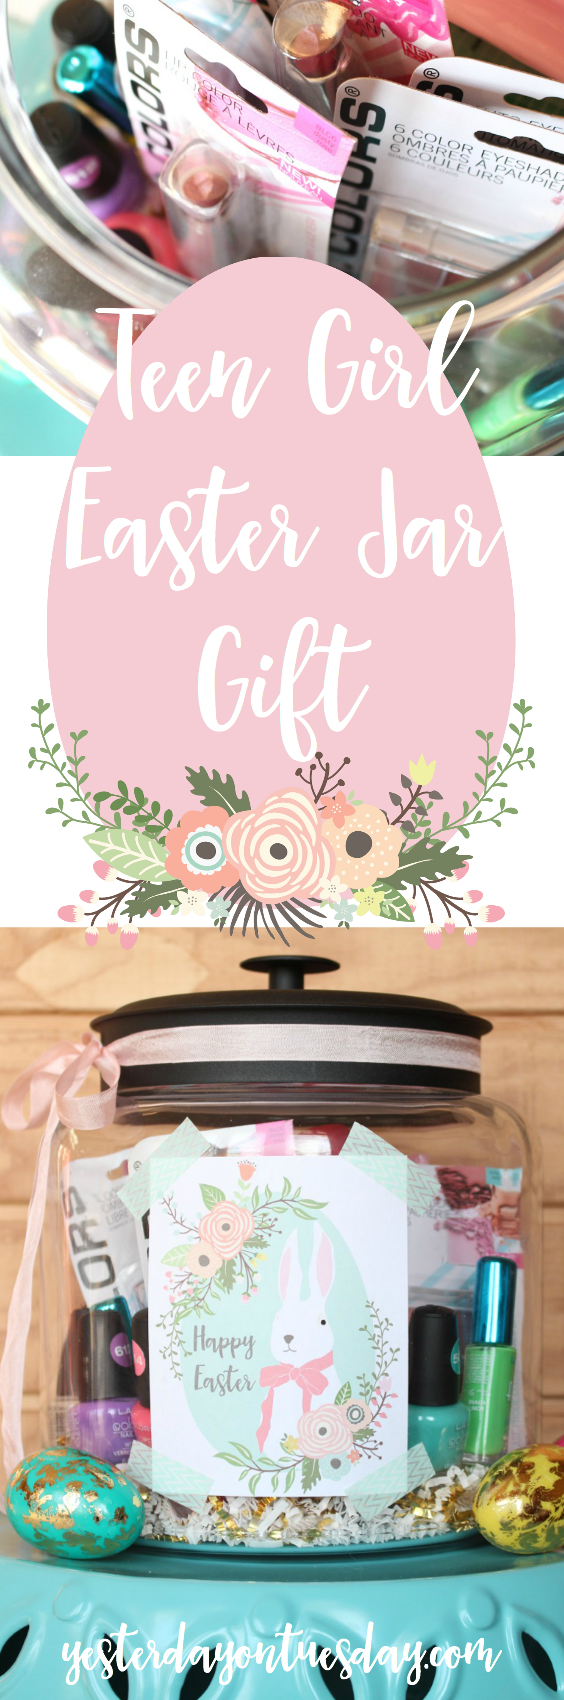 Teen girl easter jar gift pretty easter present idea for teen teen girl easter jar gift pretty easter present idea for teen girls including easter printables negle Images